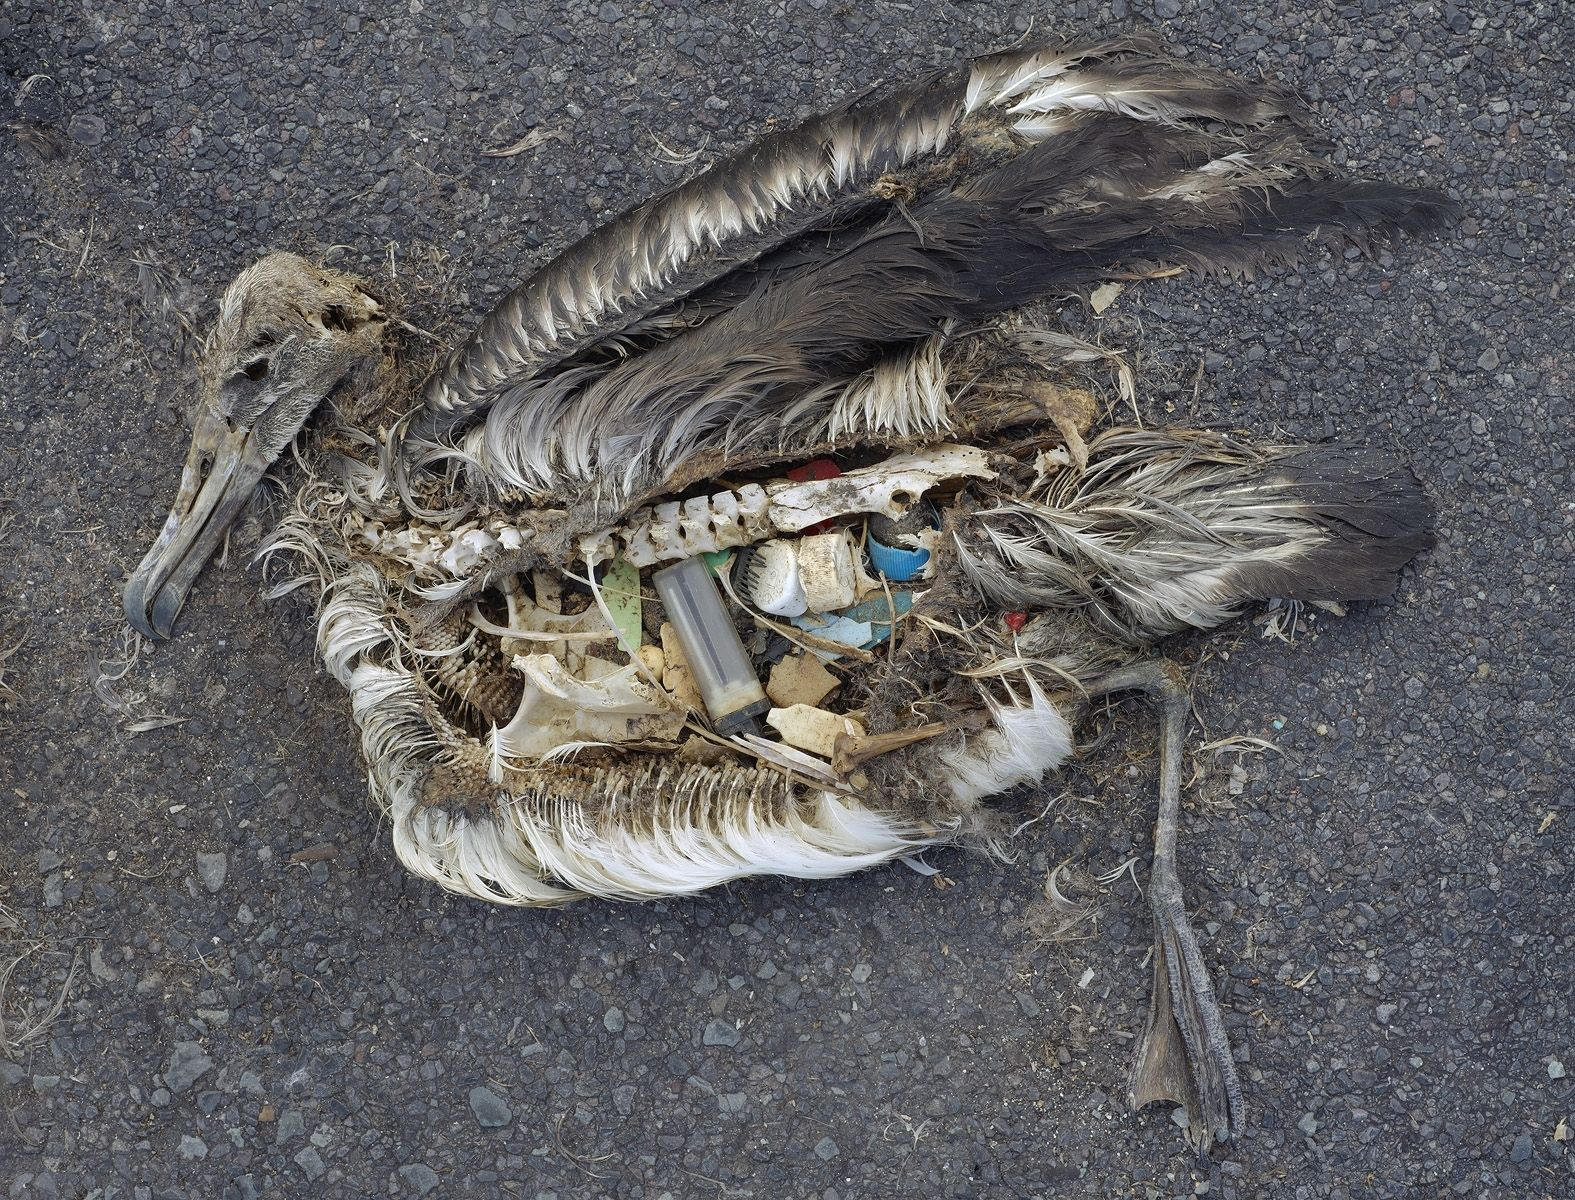 This dead albatross chick's stomach is full of plastic fed to it by its parents.